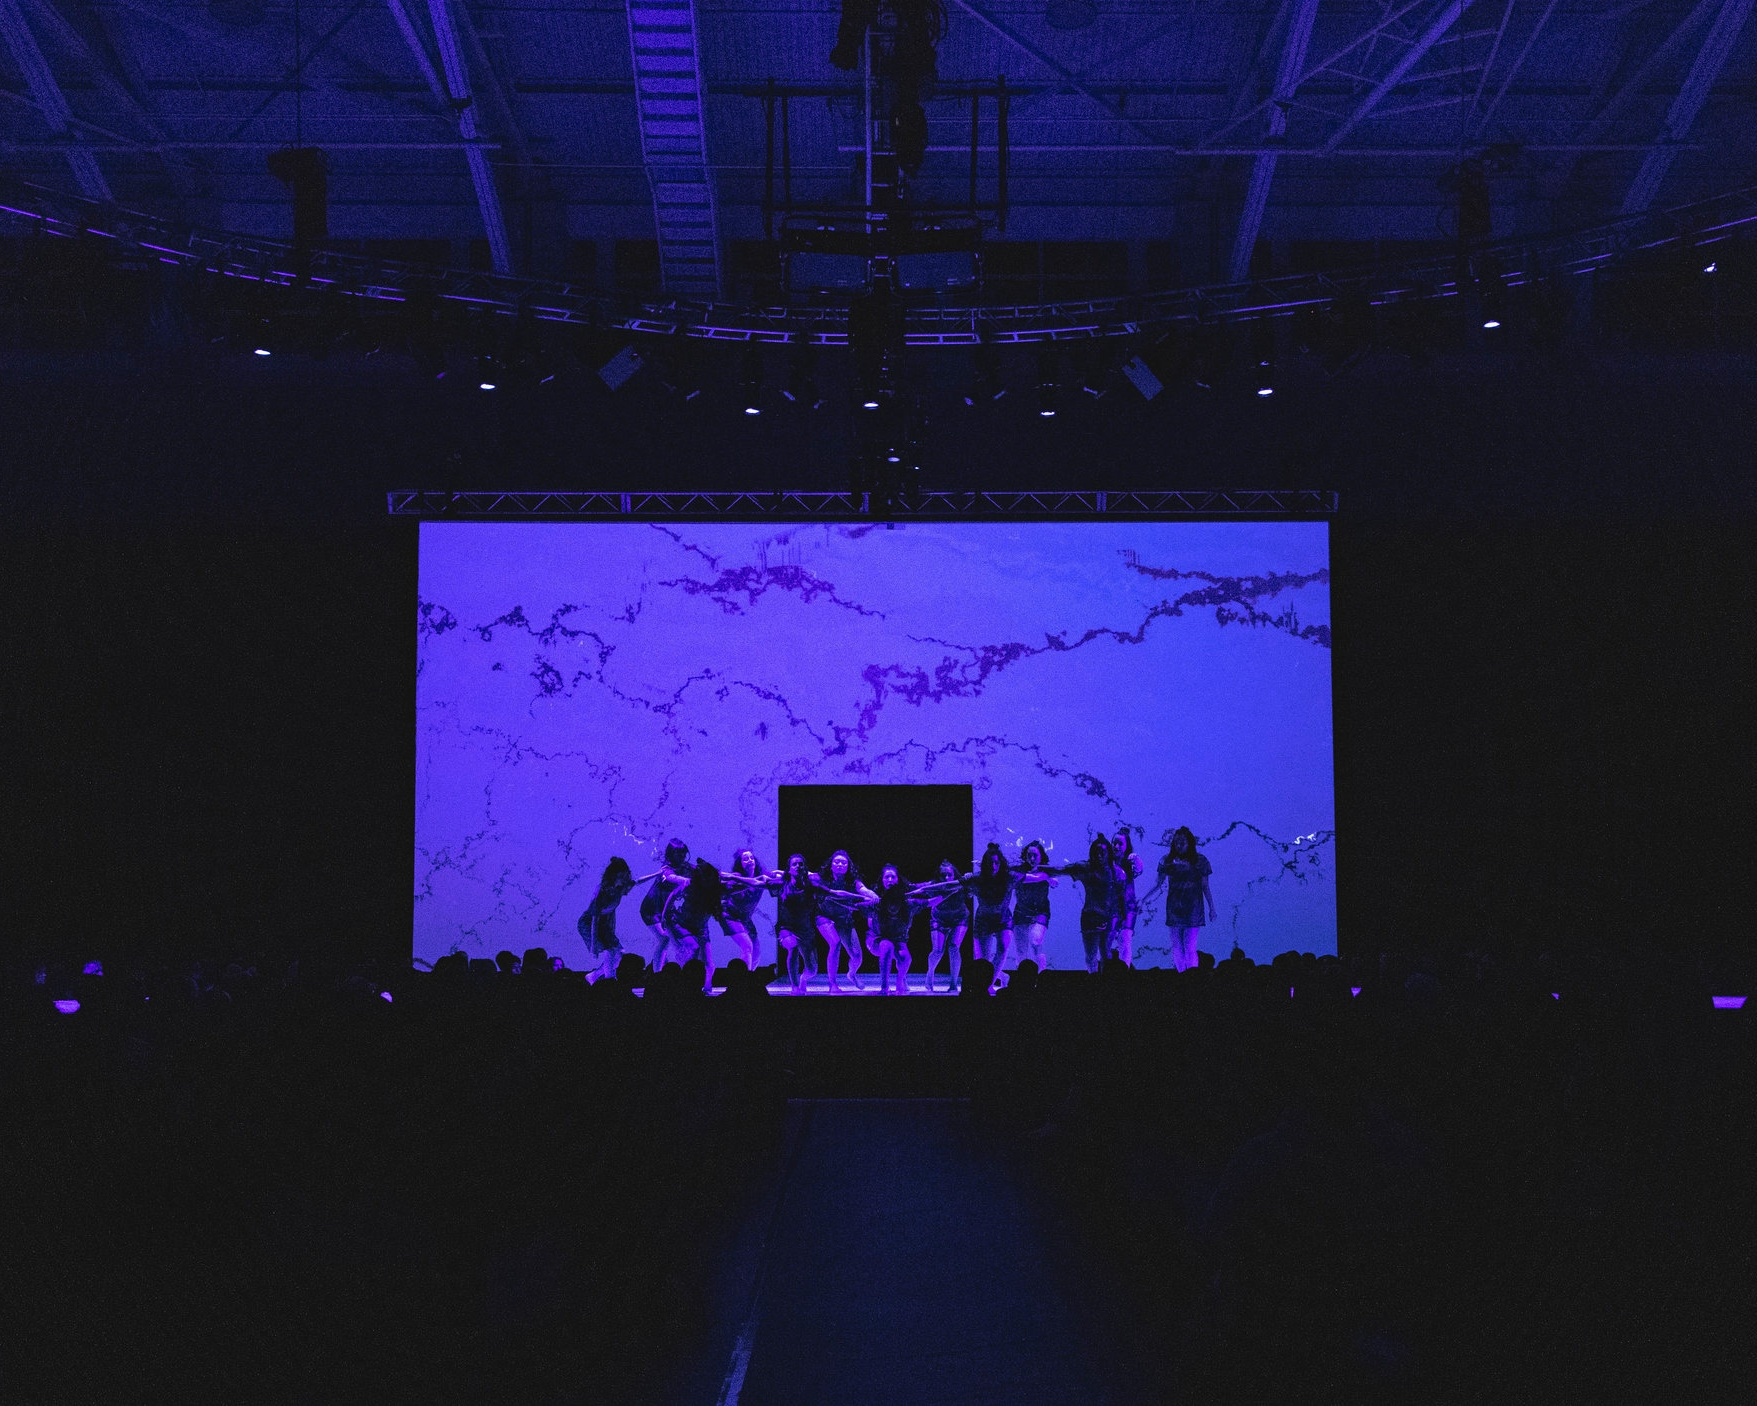 Lunar Gala: ANOMIE - Motion design for Pittsburgh's largest fashion event